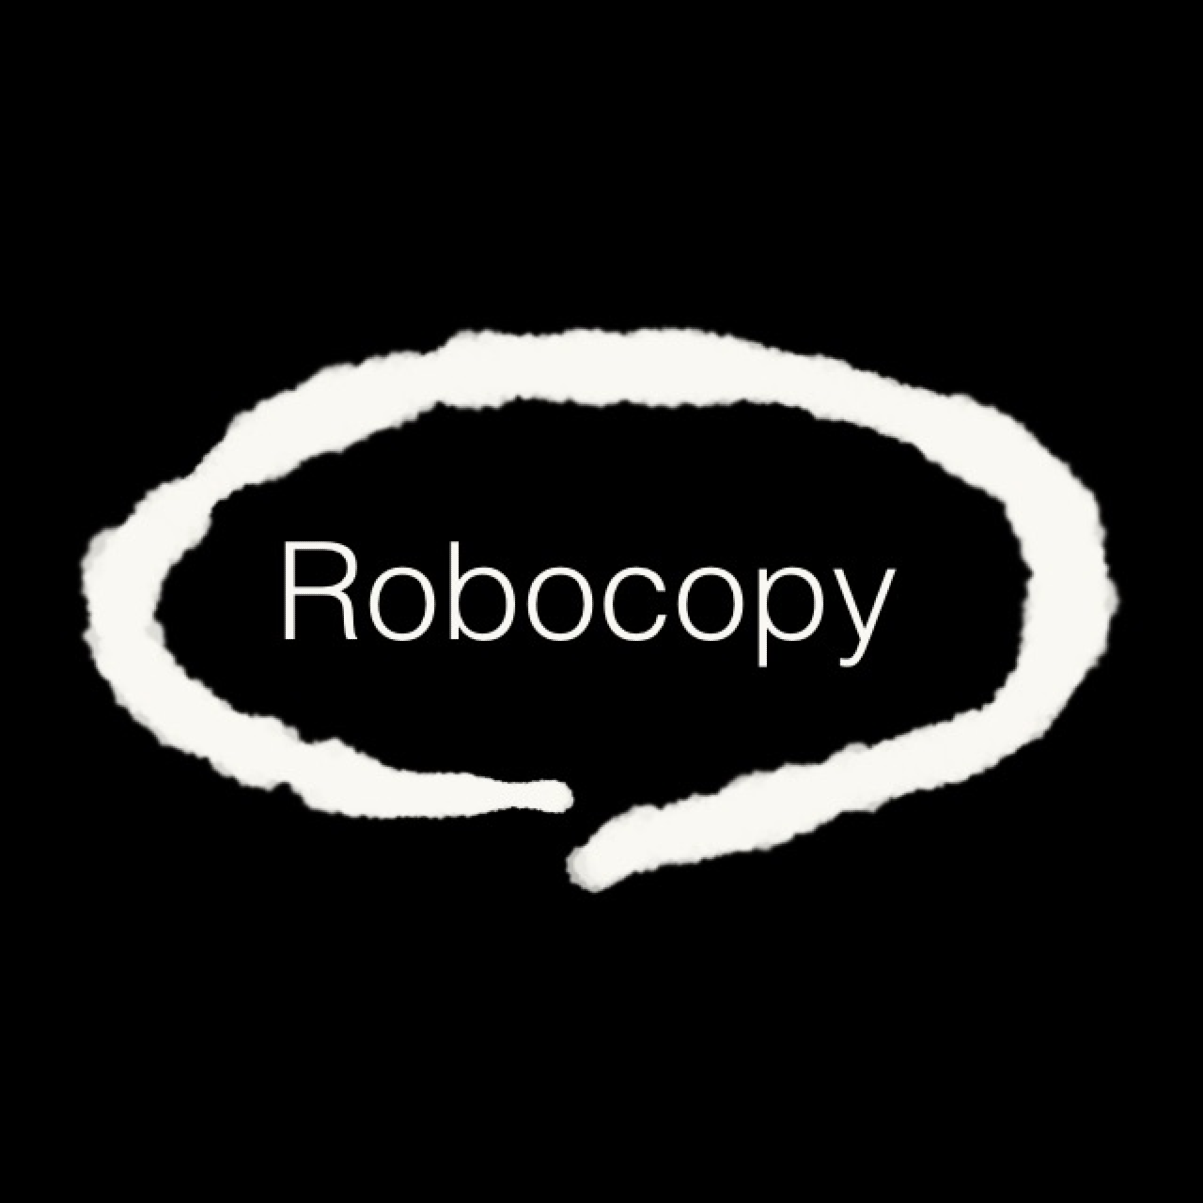 Robocopy is one of the most-used command-line utilities to copy large volumes of data in Windows. It's such a popular tool because of how powerf